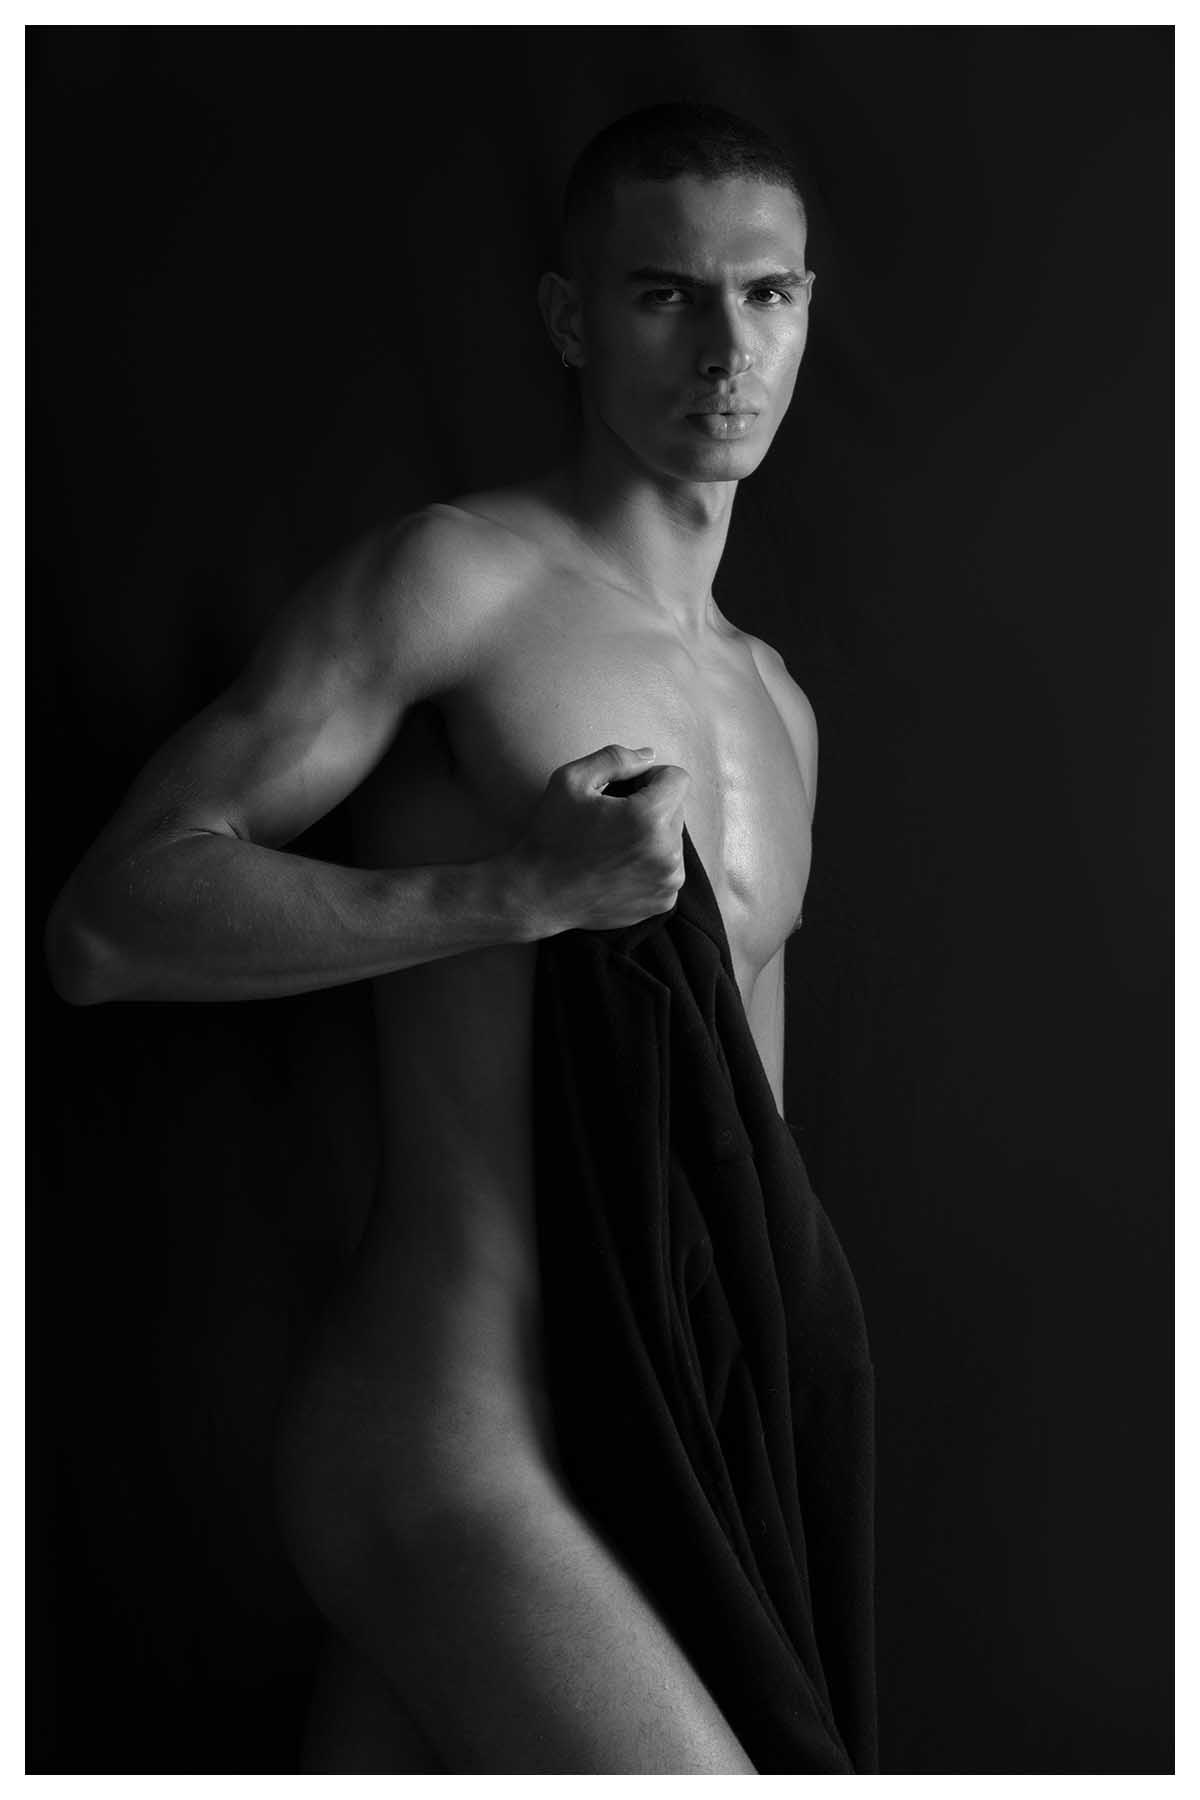 Bryan Castilho by Anderson Silva for Brazilian Male Model